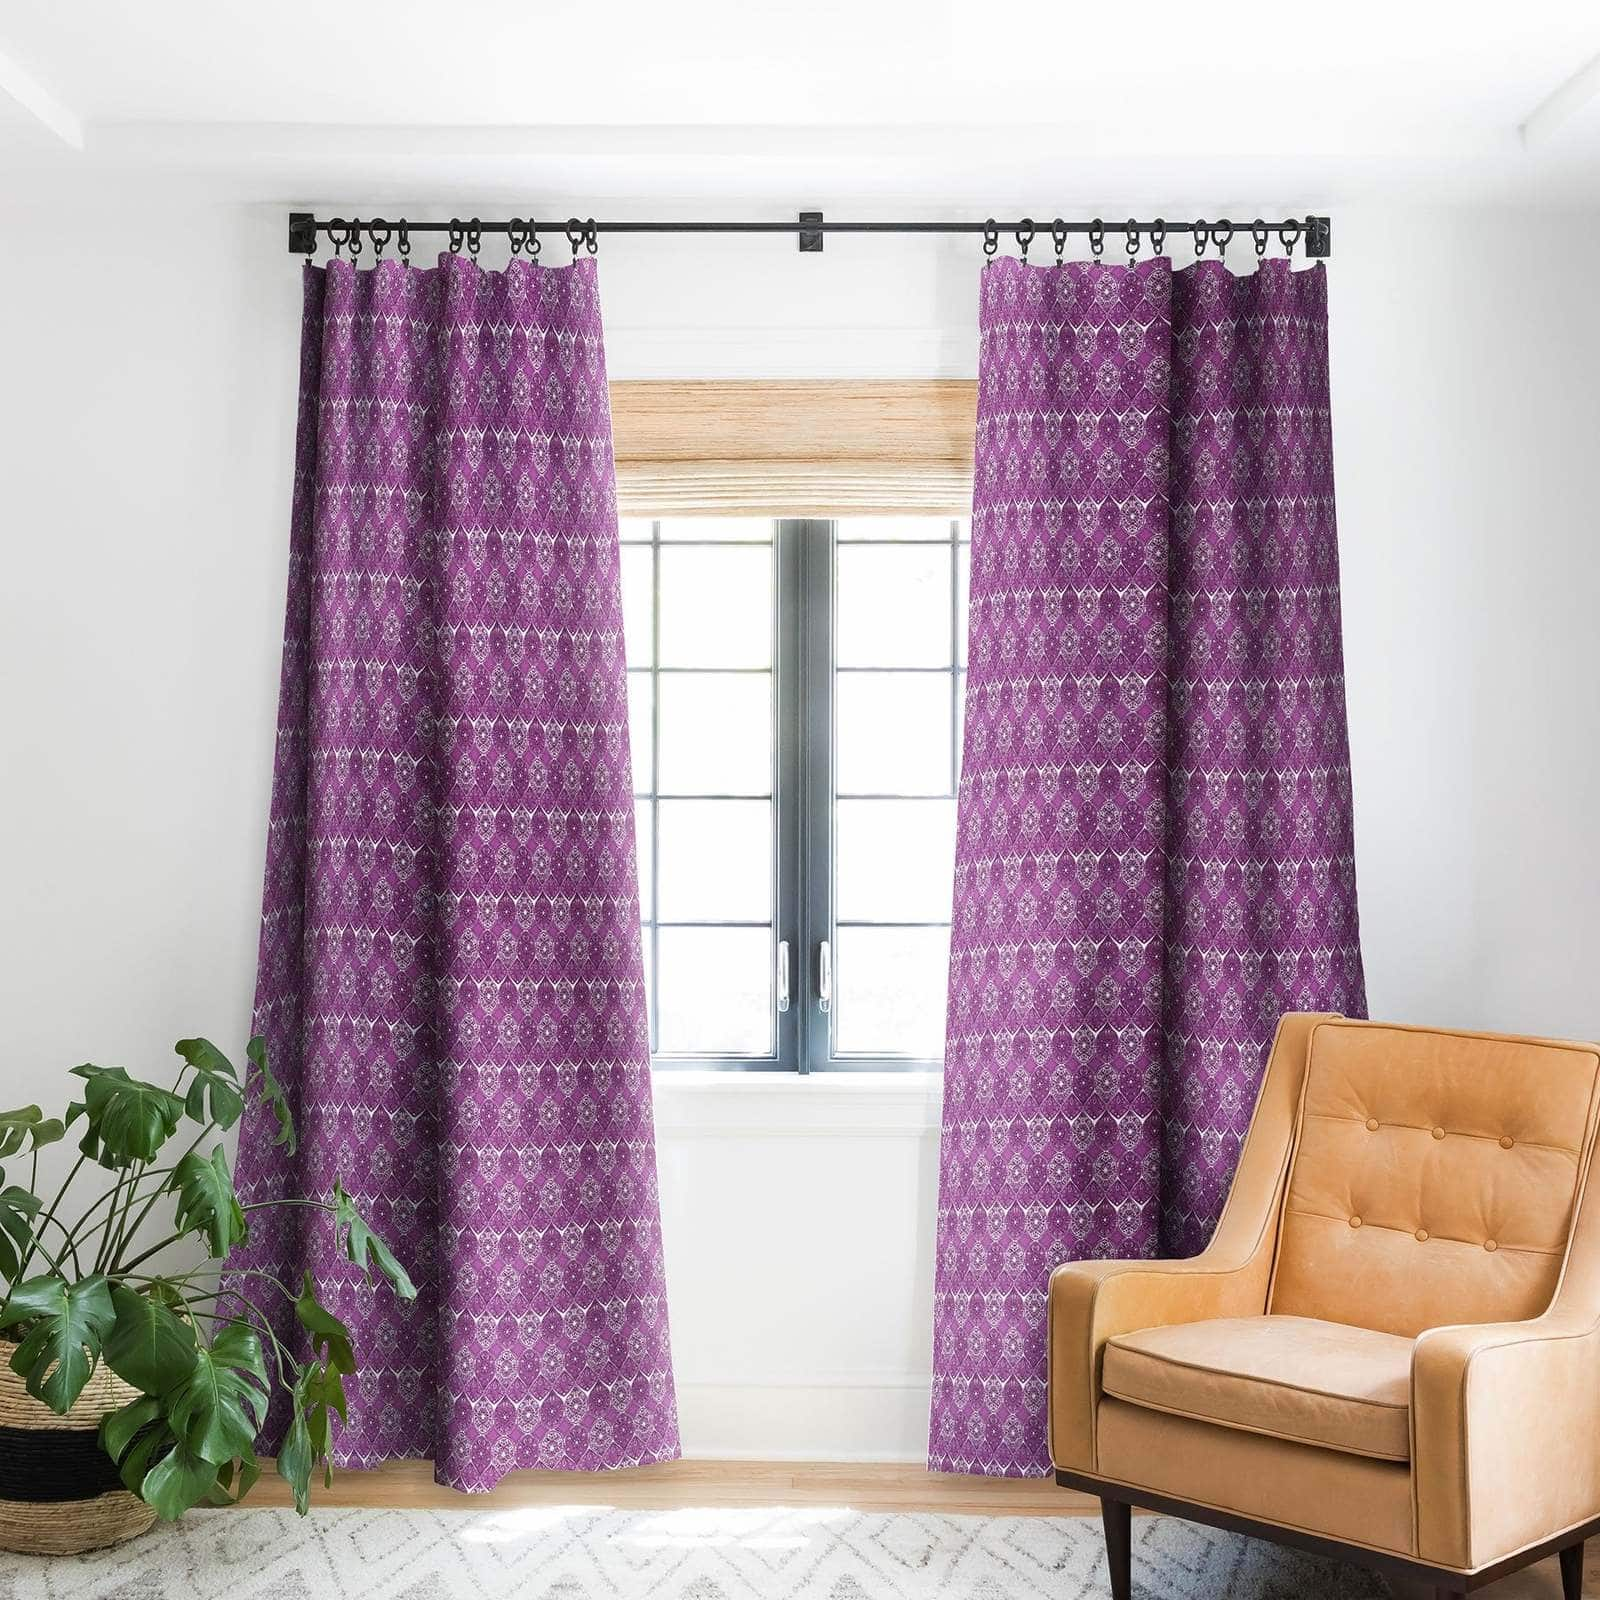 White and Purple Curtains